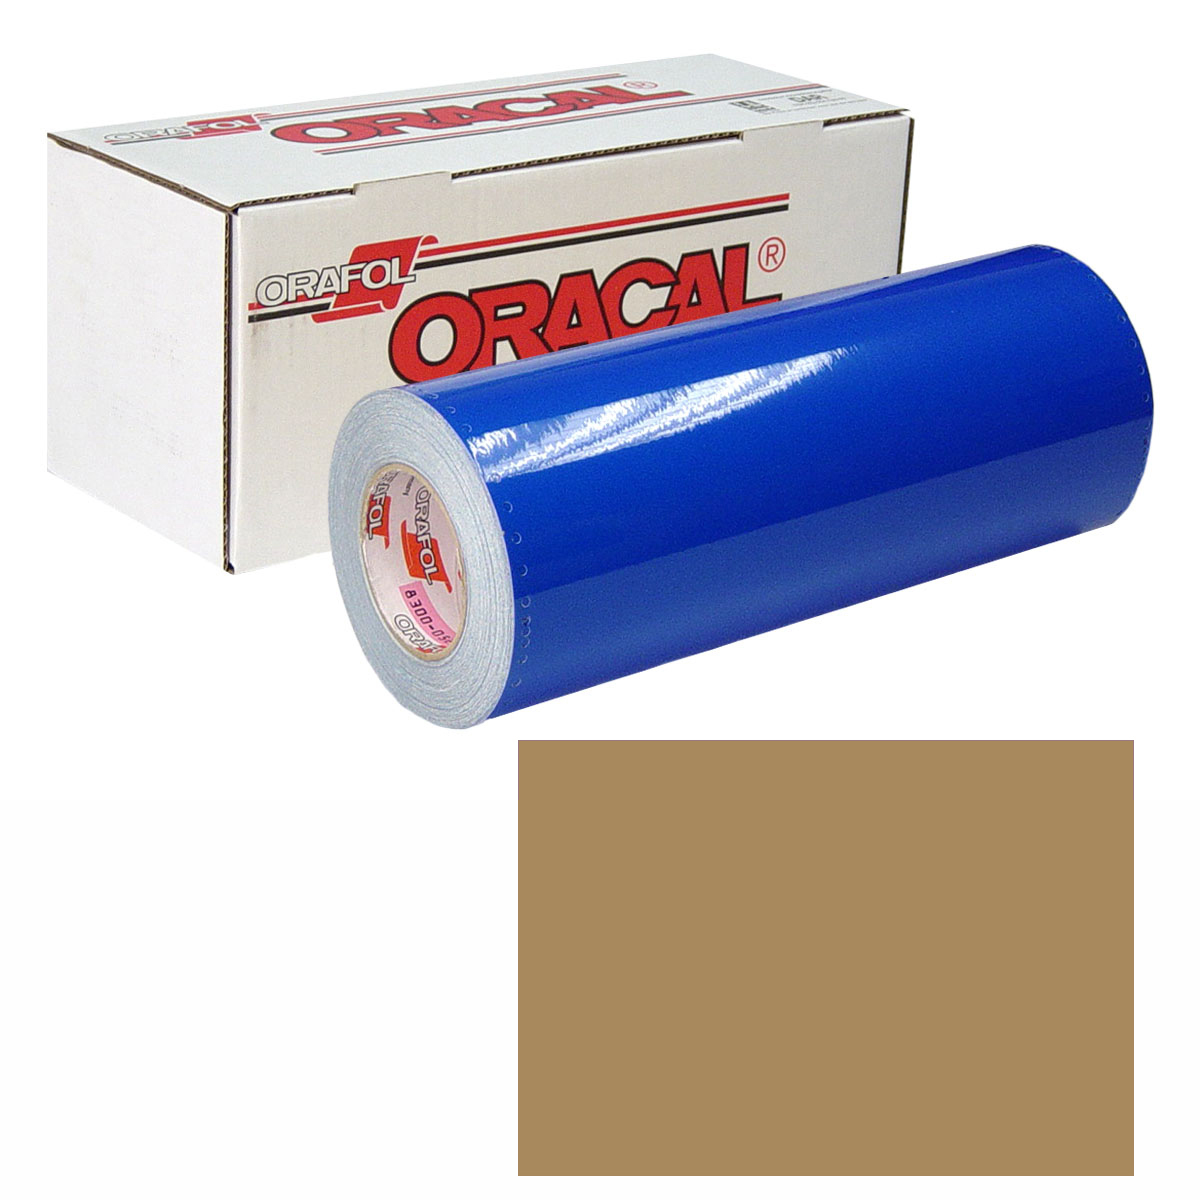 ORACAL 631 Unp 24in X 10yd 081 Light Brown